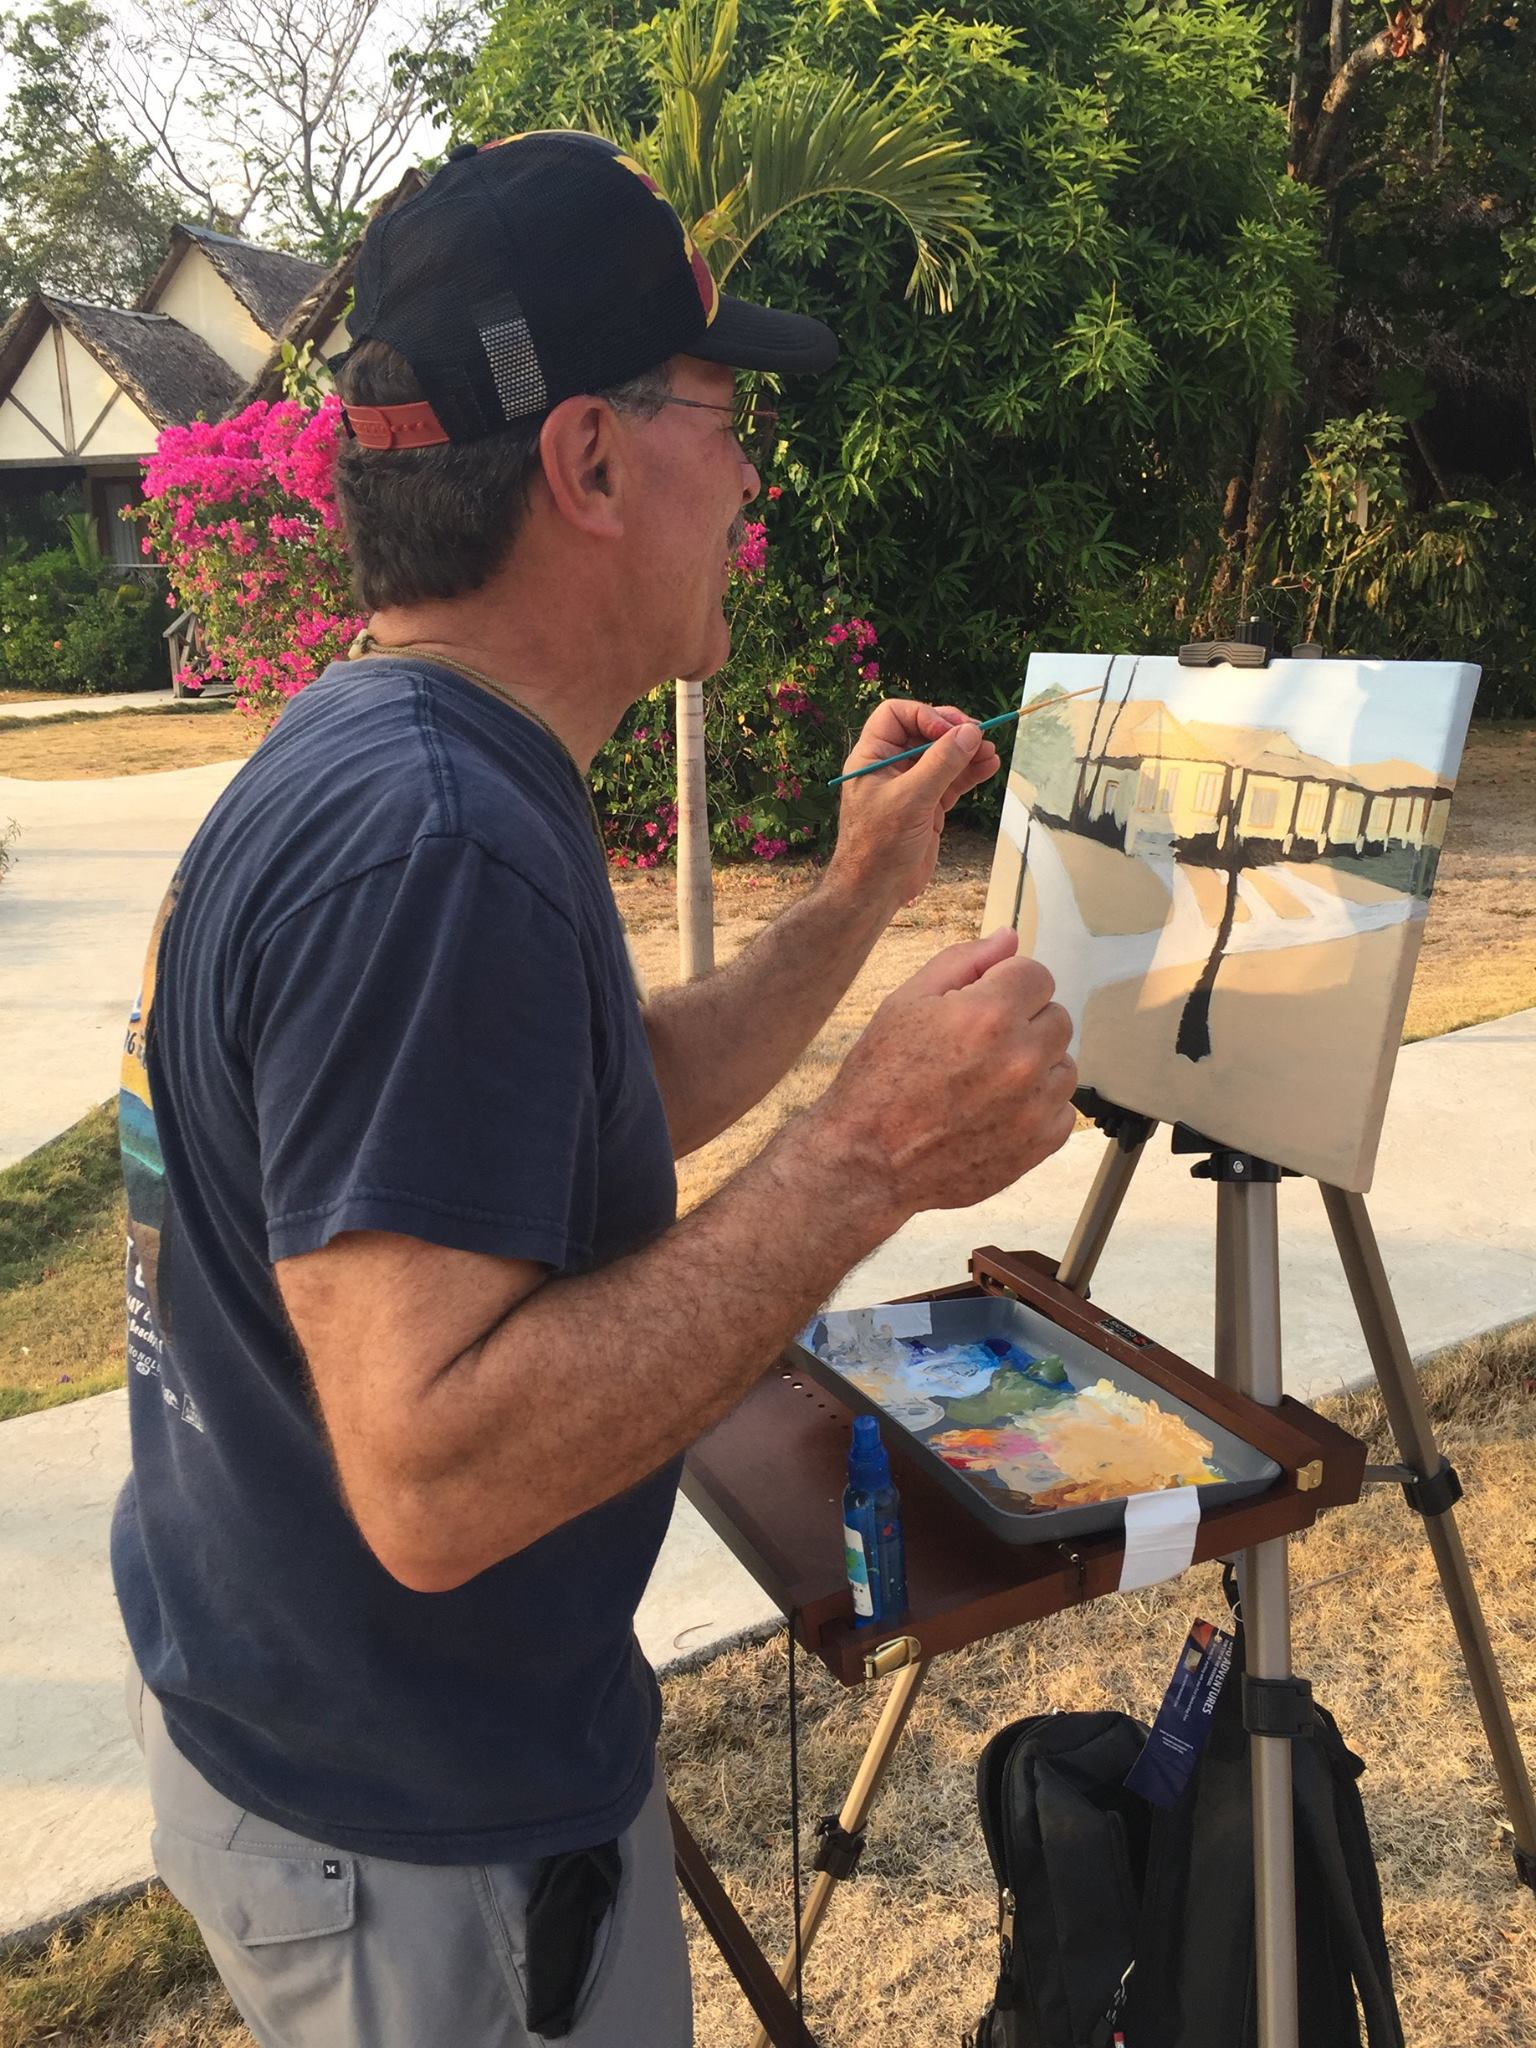 Always working! Taping down the palette is wise in high winds. The water bottle mister keeps my acrylics moist.